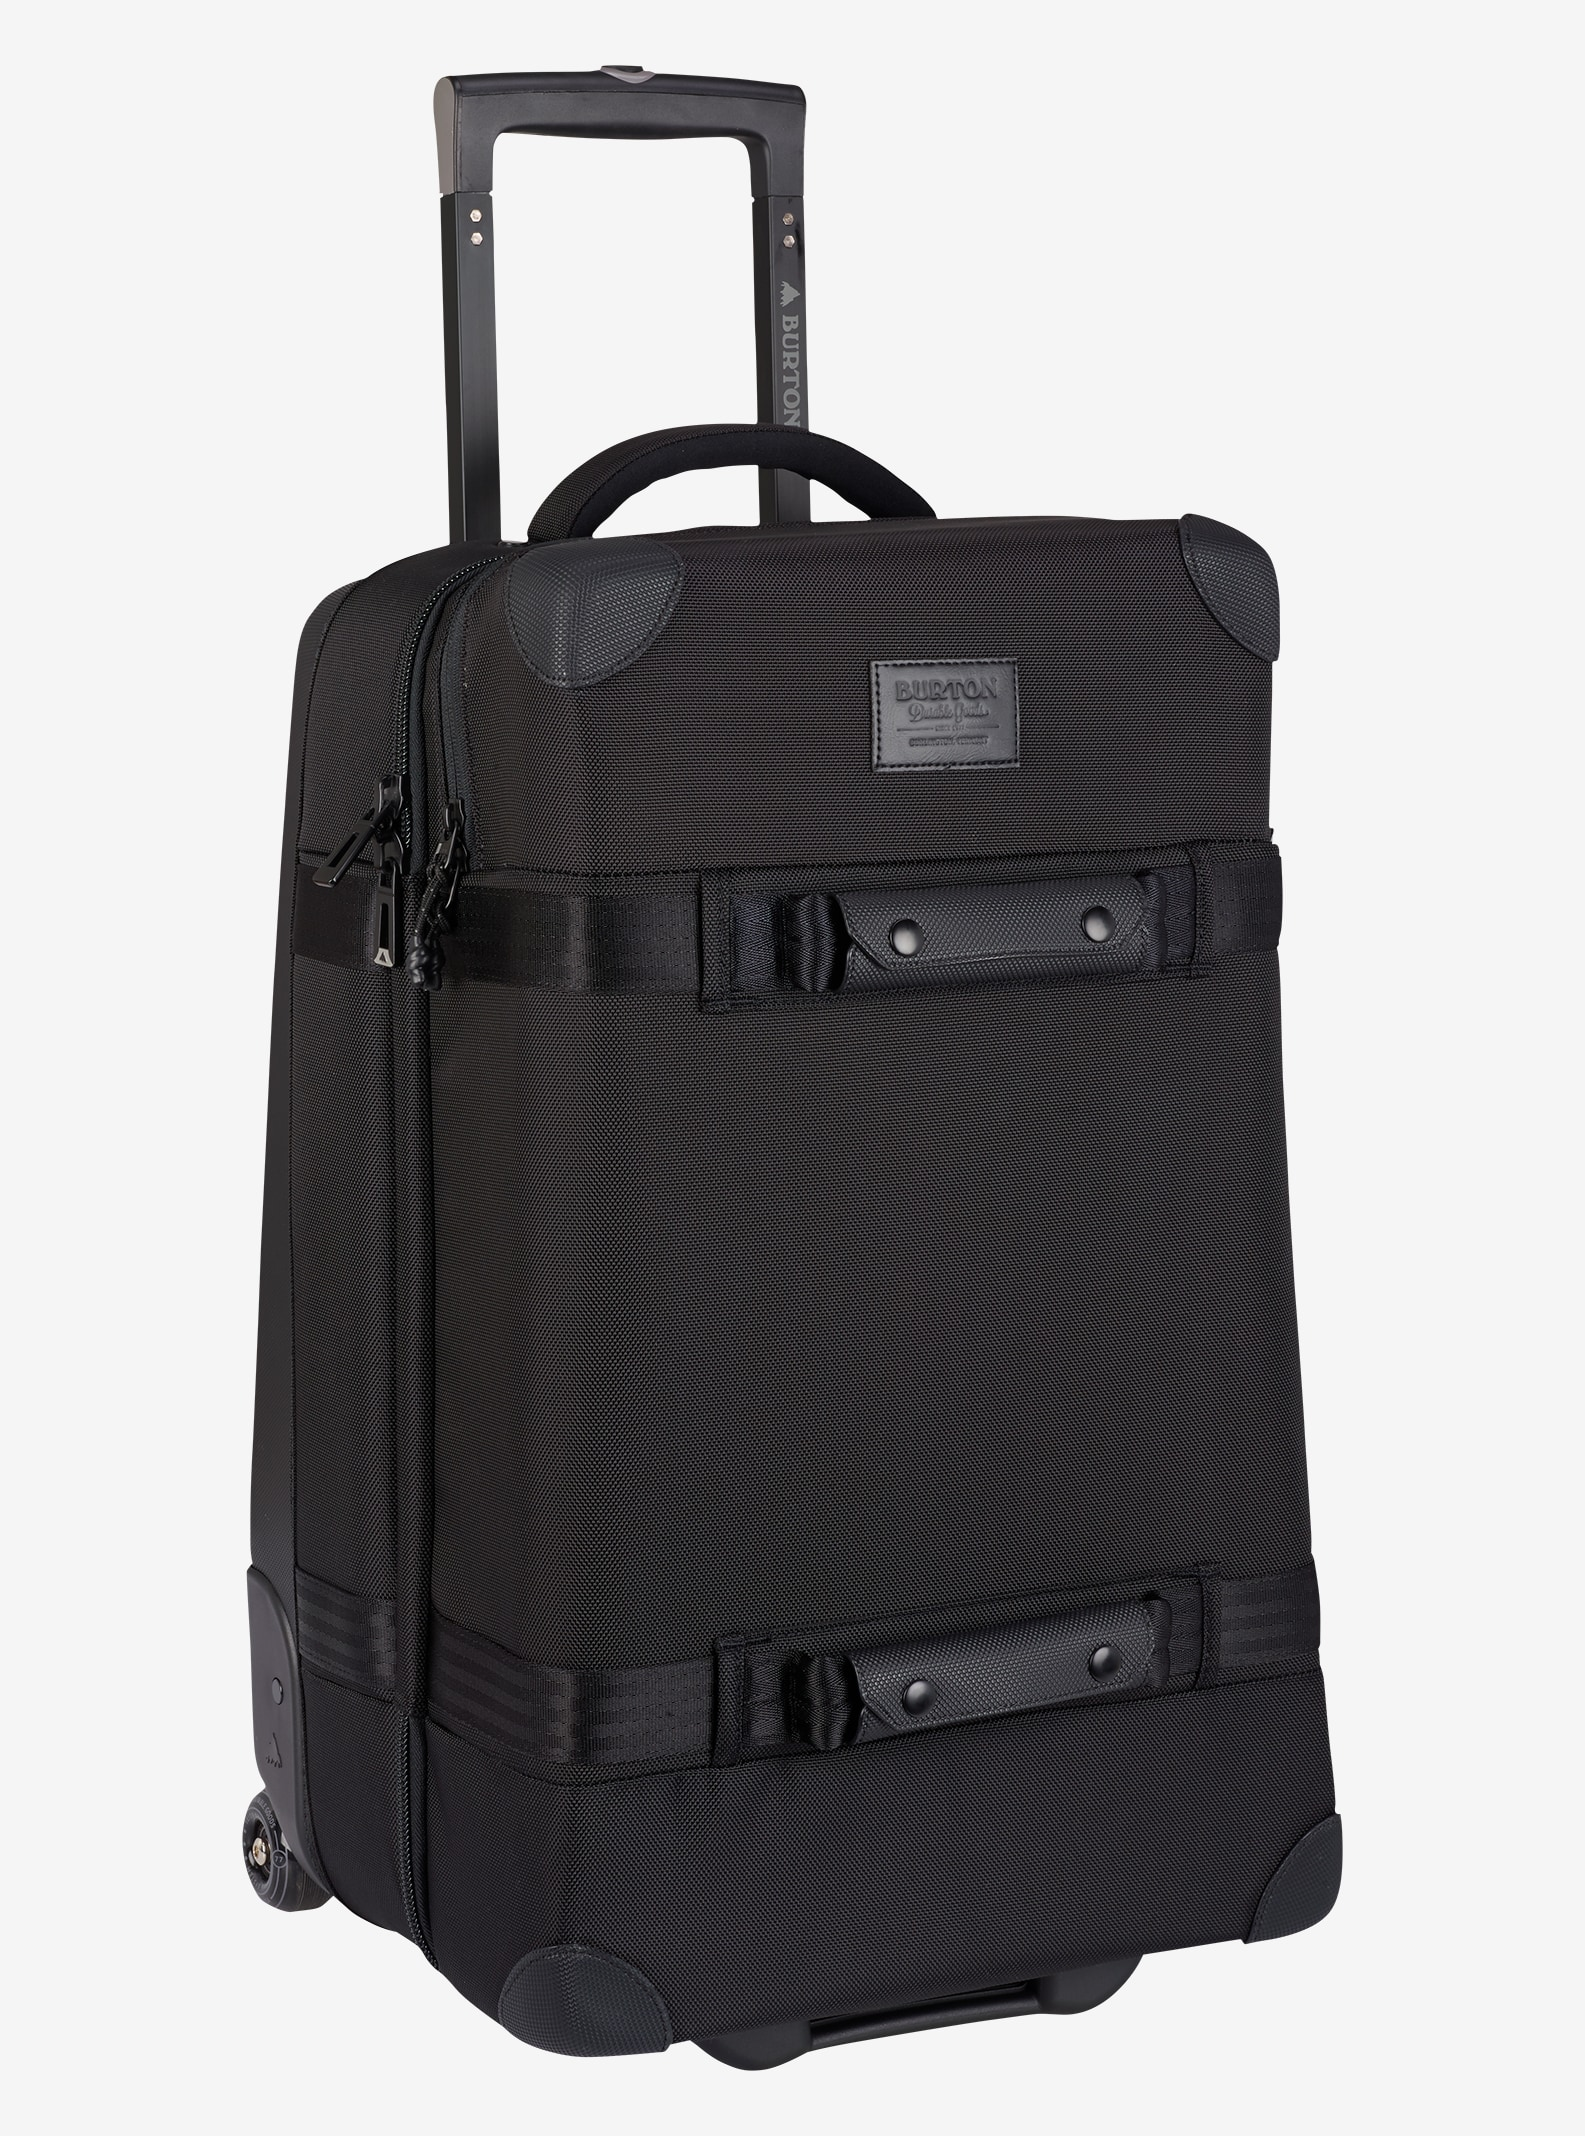 Burton Wheelie Cargo Travel Bag shown in True Black Ballistic